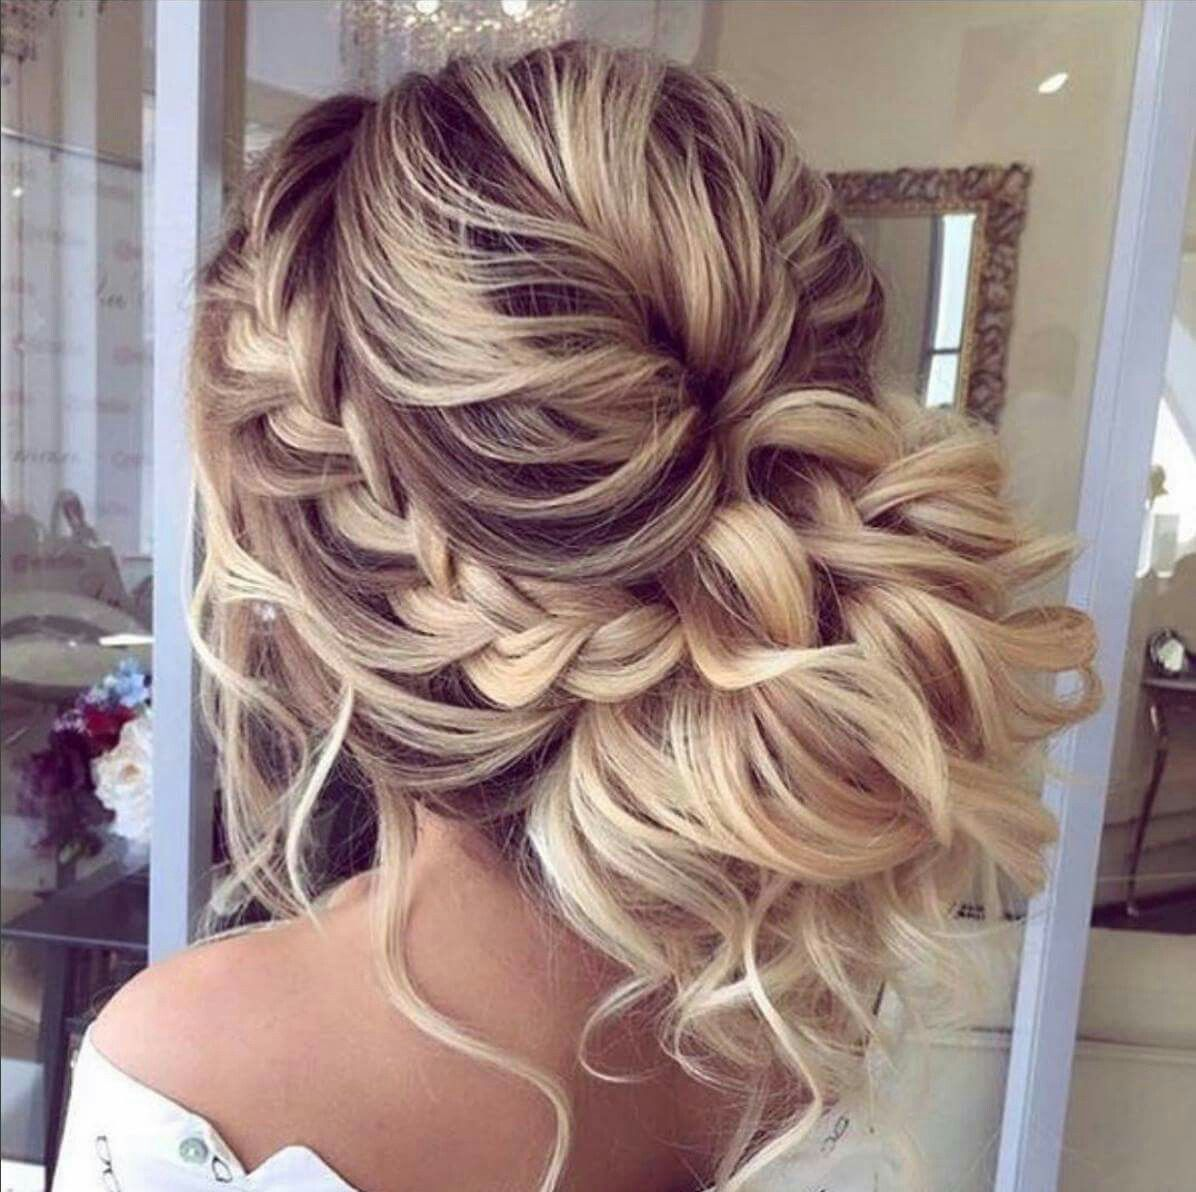 sweet 16 hairstyles | sweet 16 in 2019 | unique wedding